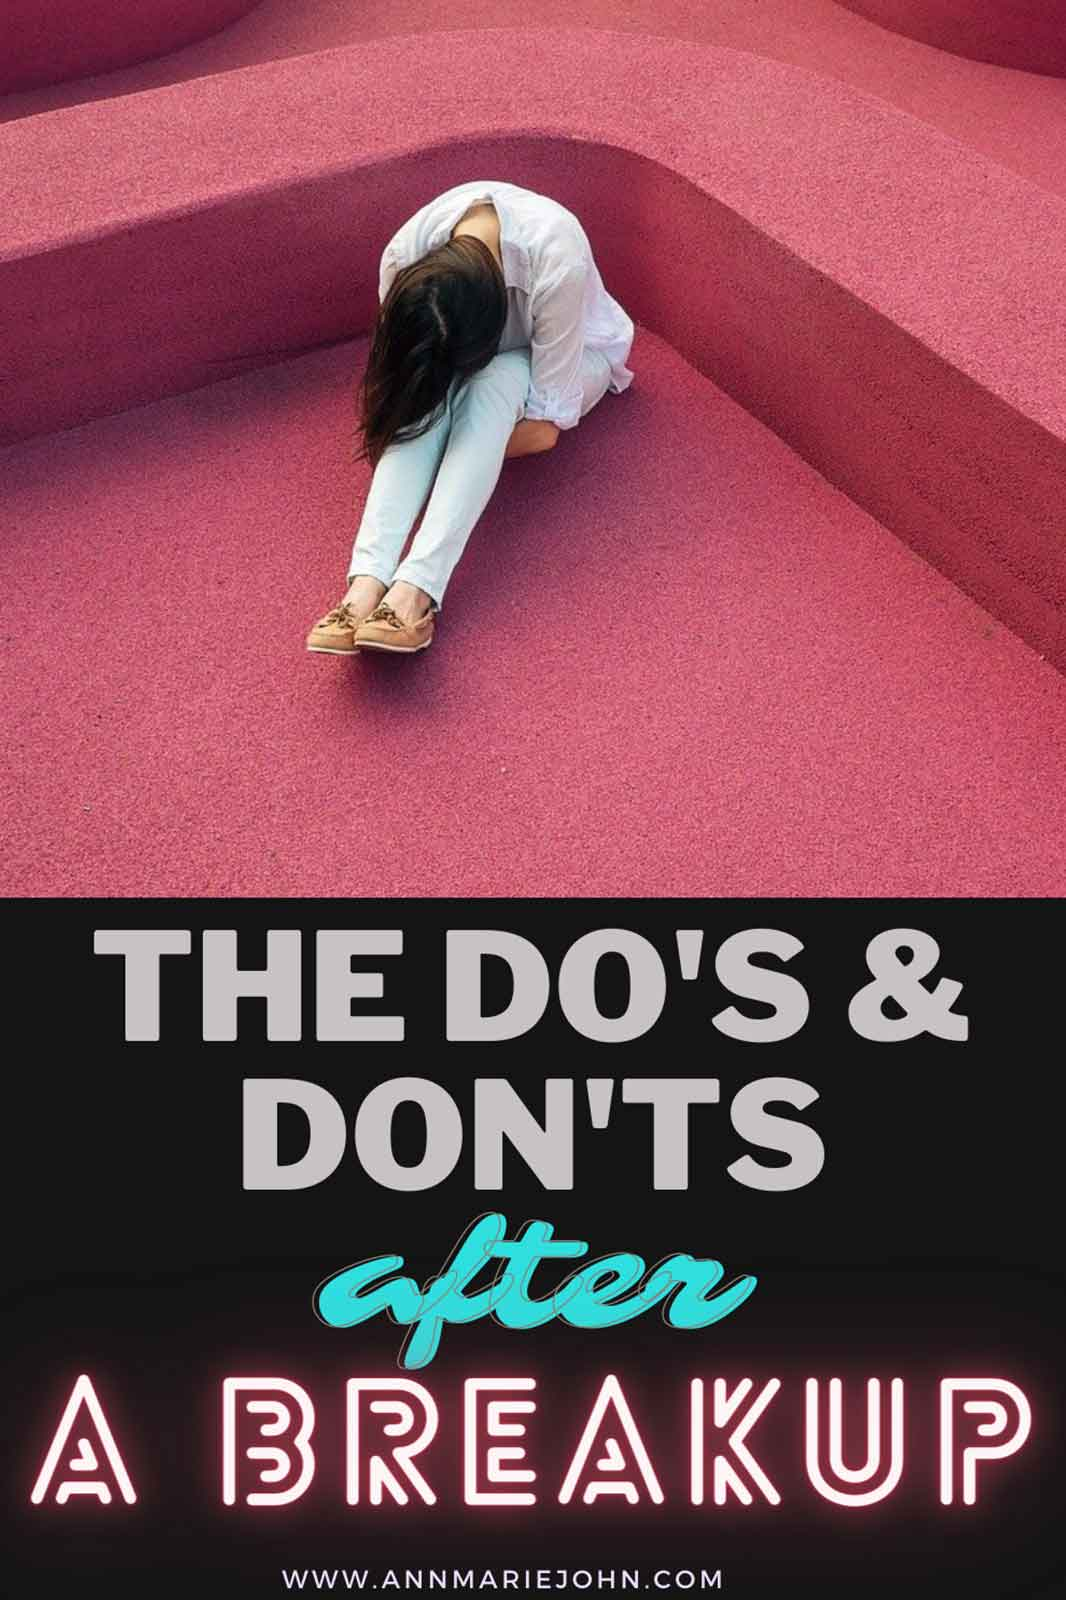 The Dos and Don'ts After a Breakup